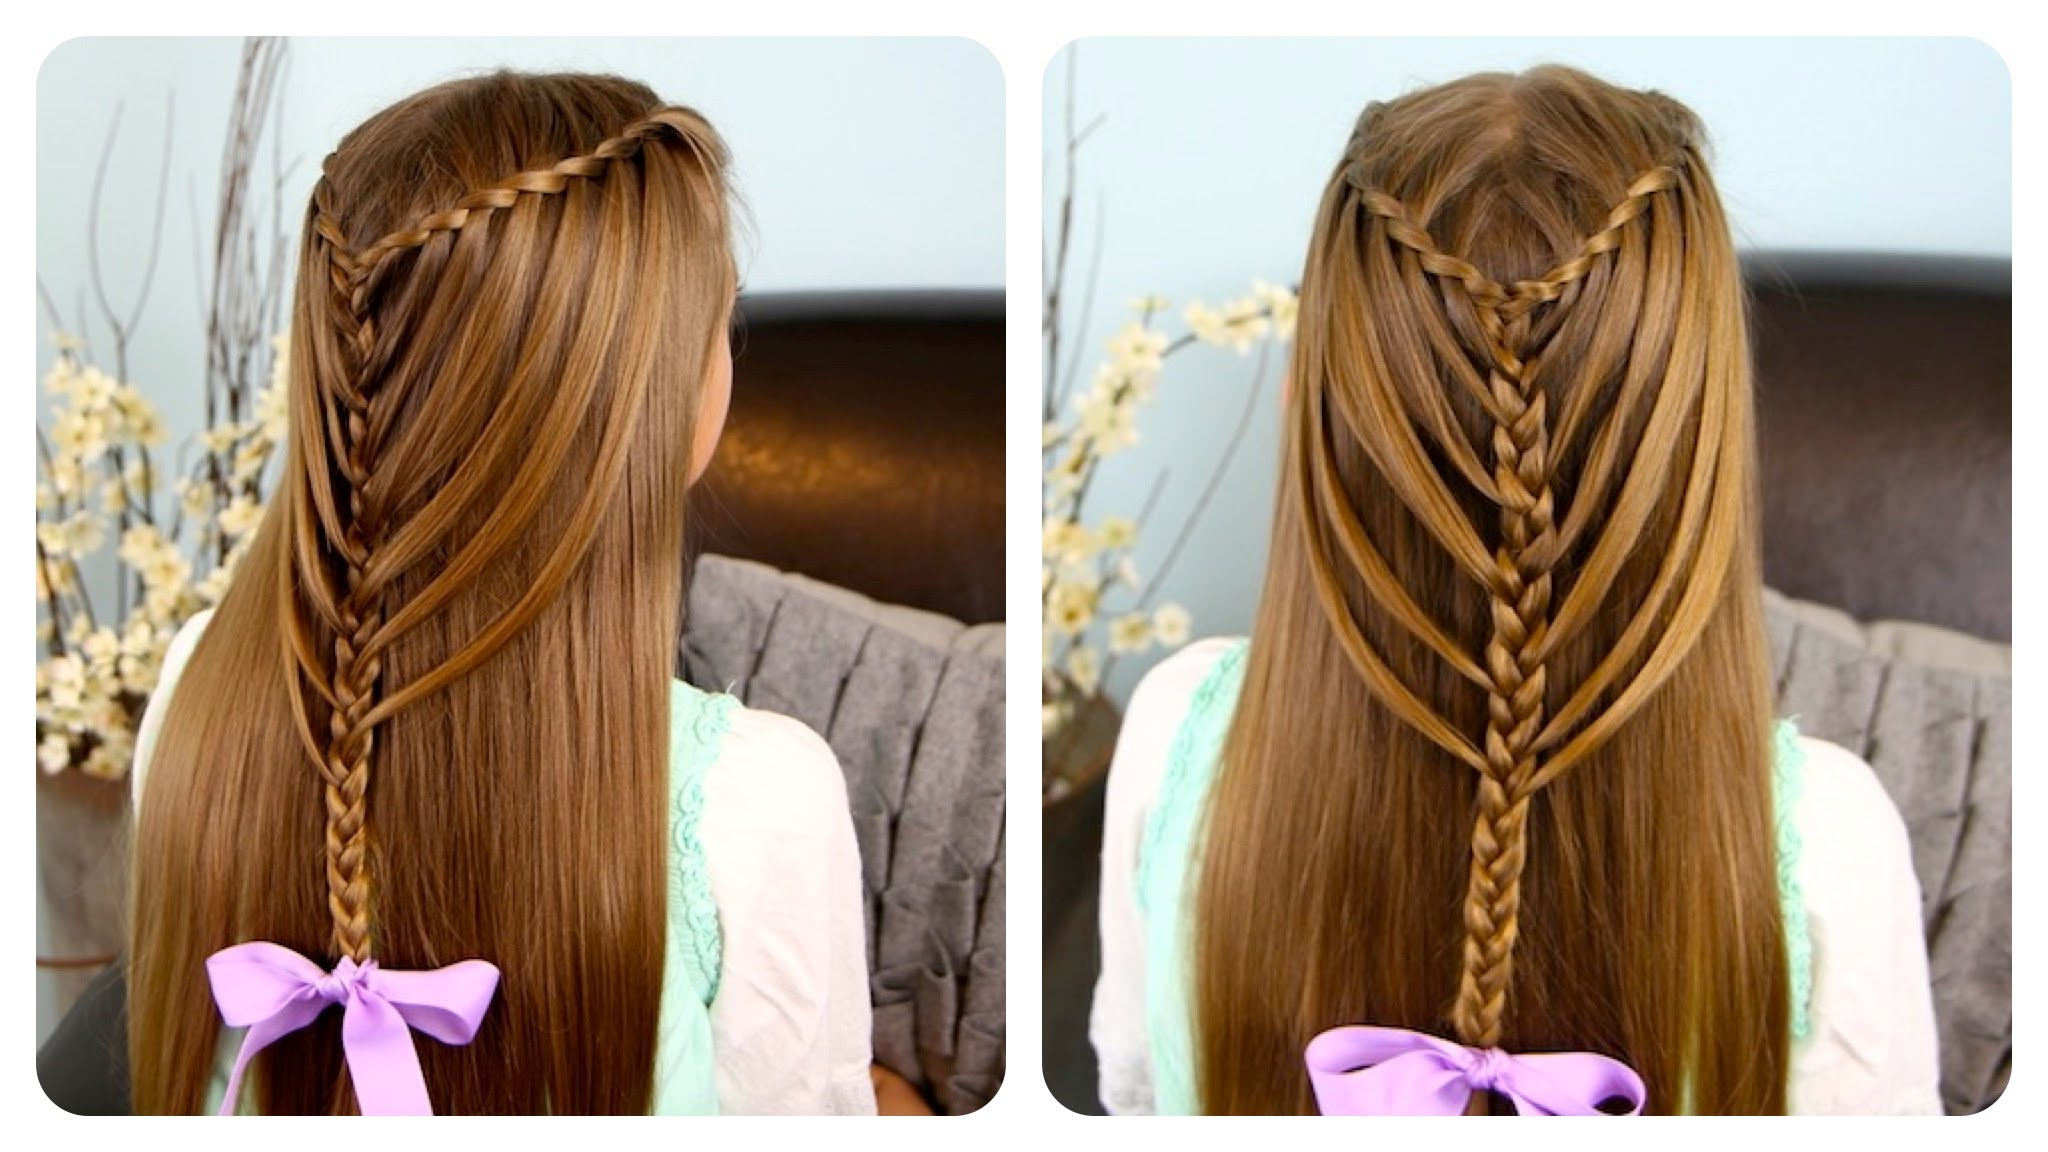 20 Spectacular Mermaid Hairstyles That Will Get You Noticed Regarding Latest Flawless Mermaid Tail Braid Hairstyles (View 17 of 20)